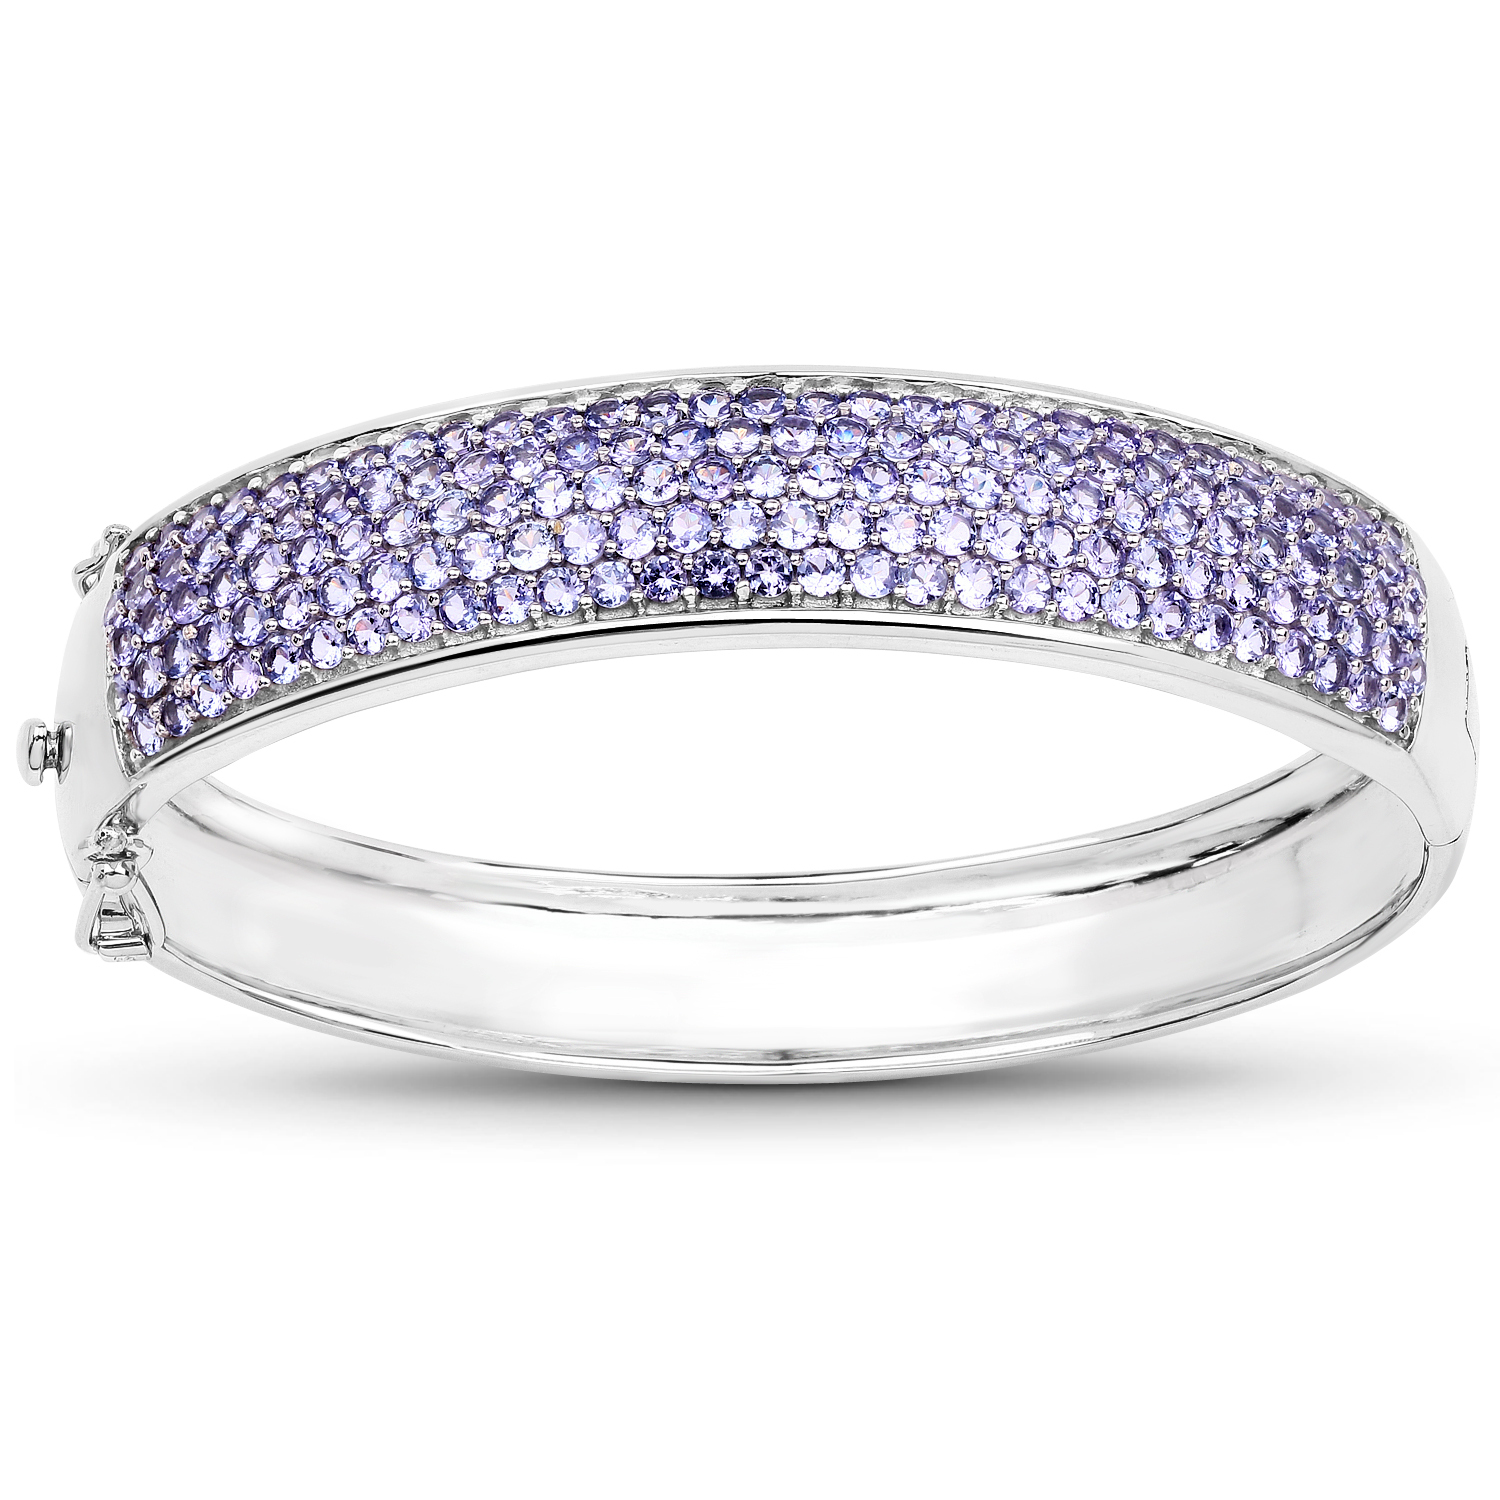 Genuine Round Tanzanite Bracelet in Sterling Silver by Bonyak Jewelry